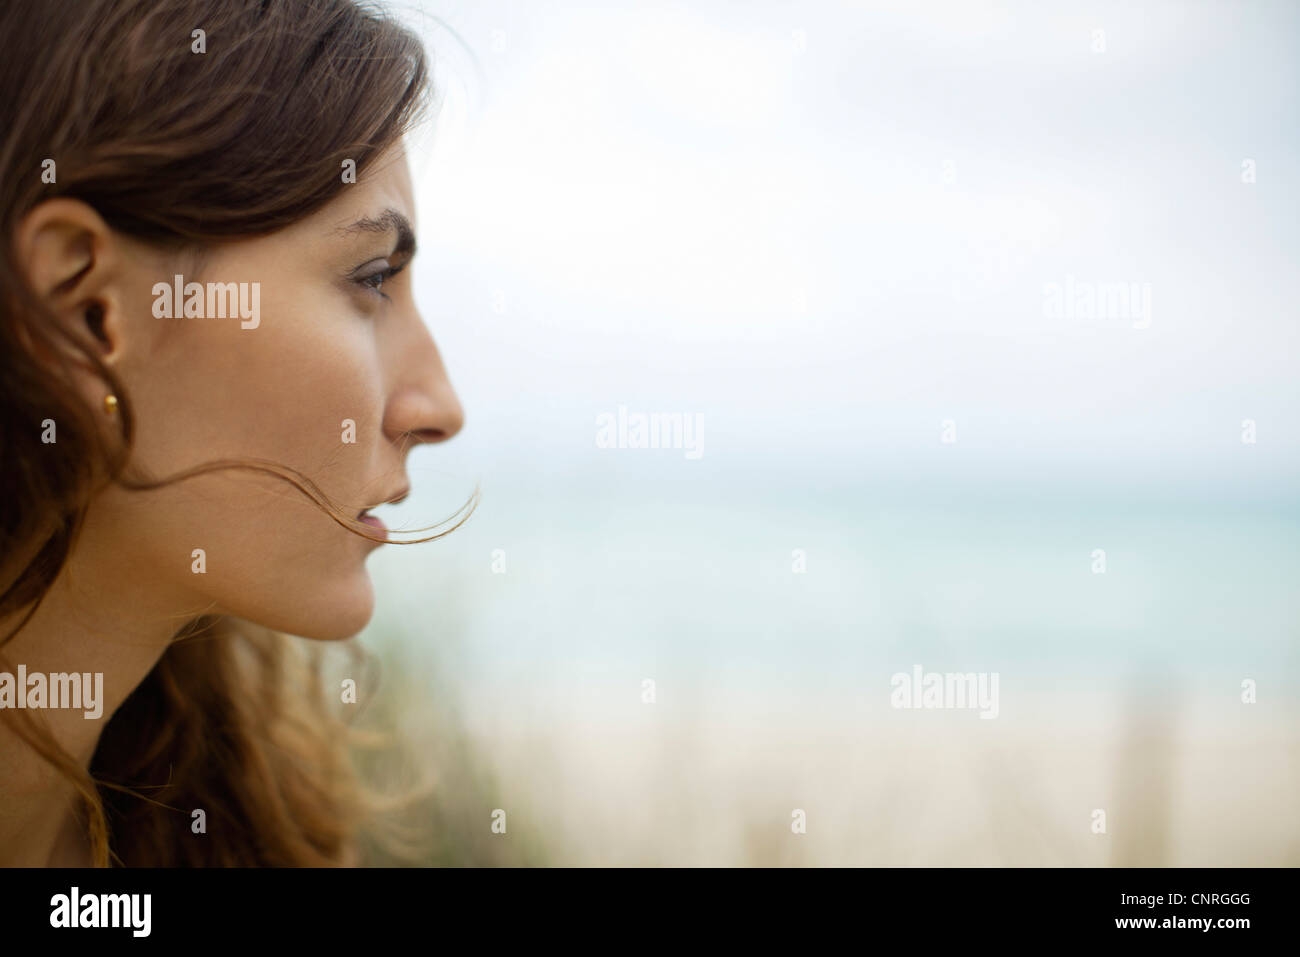 Profile of young woman outdoors - Stock Image